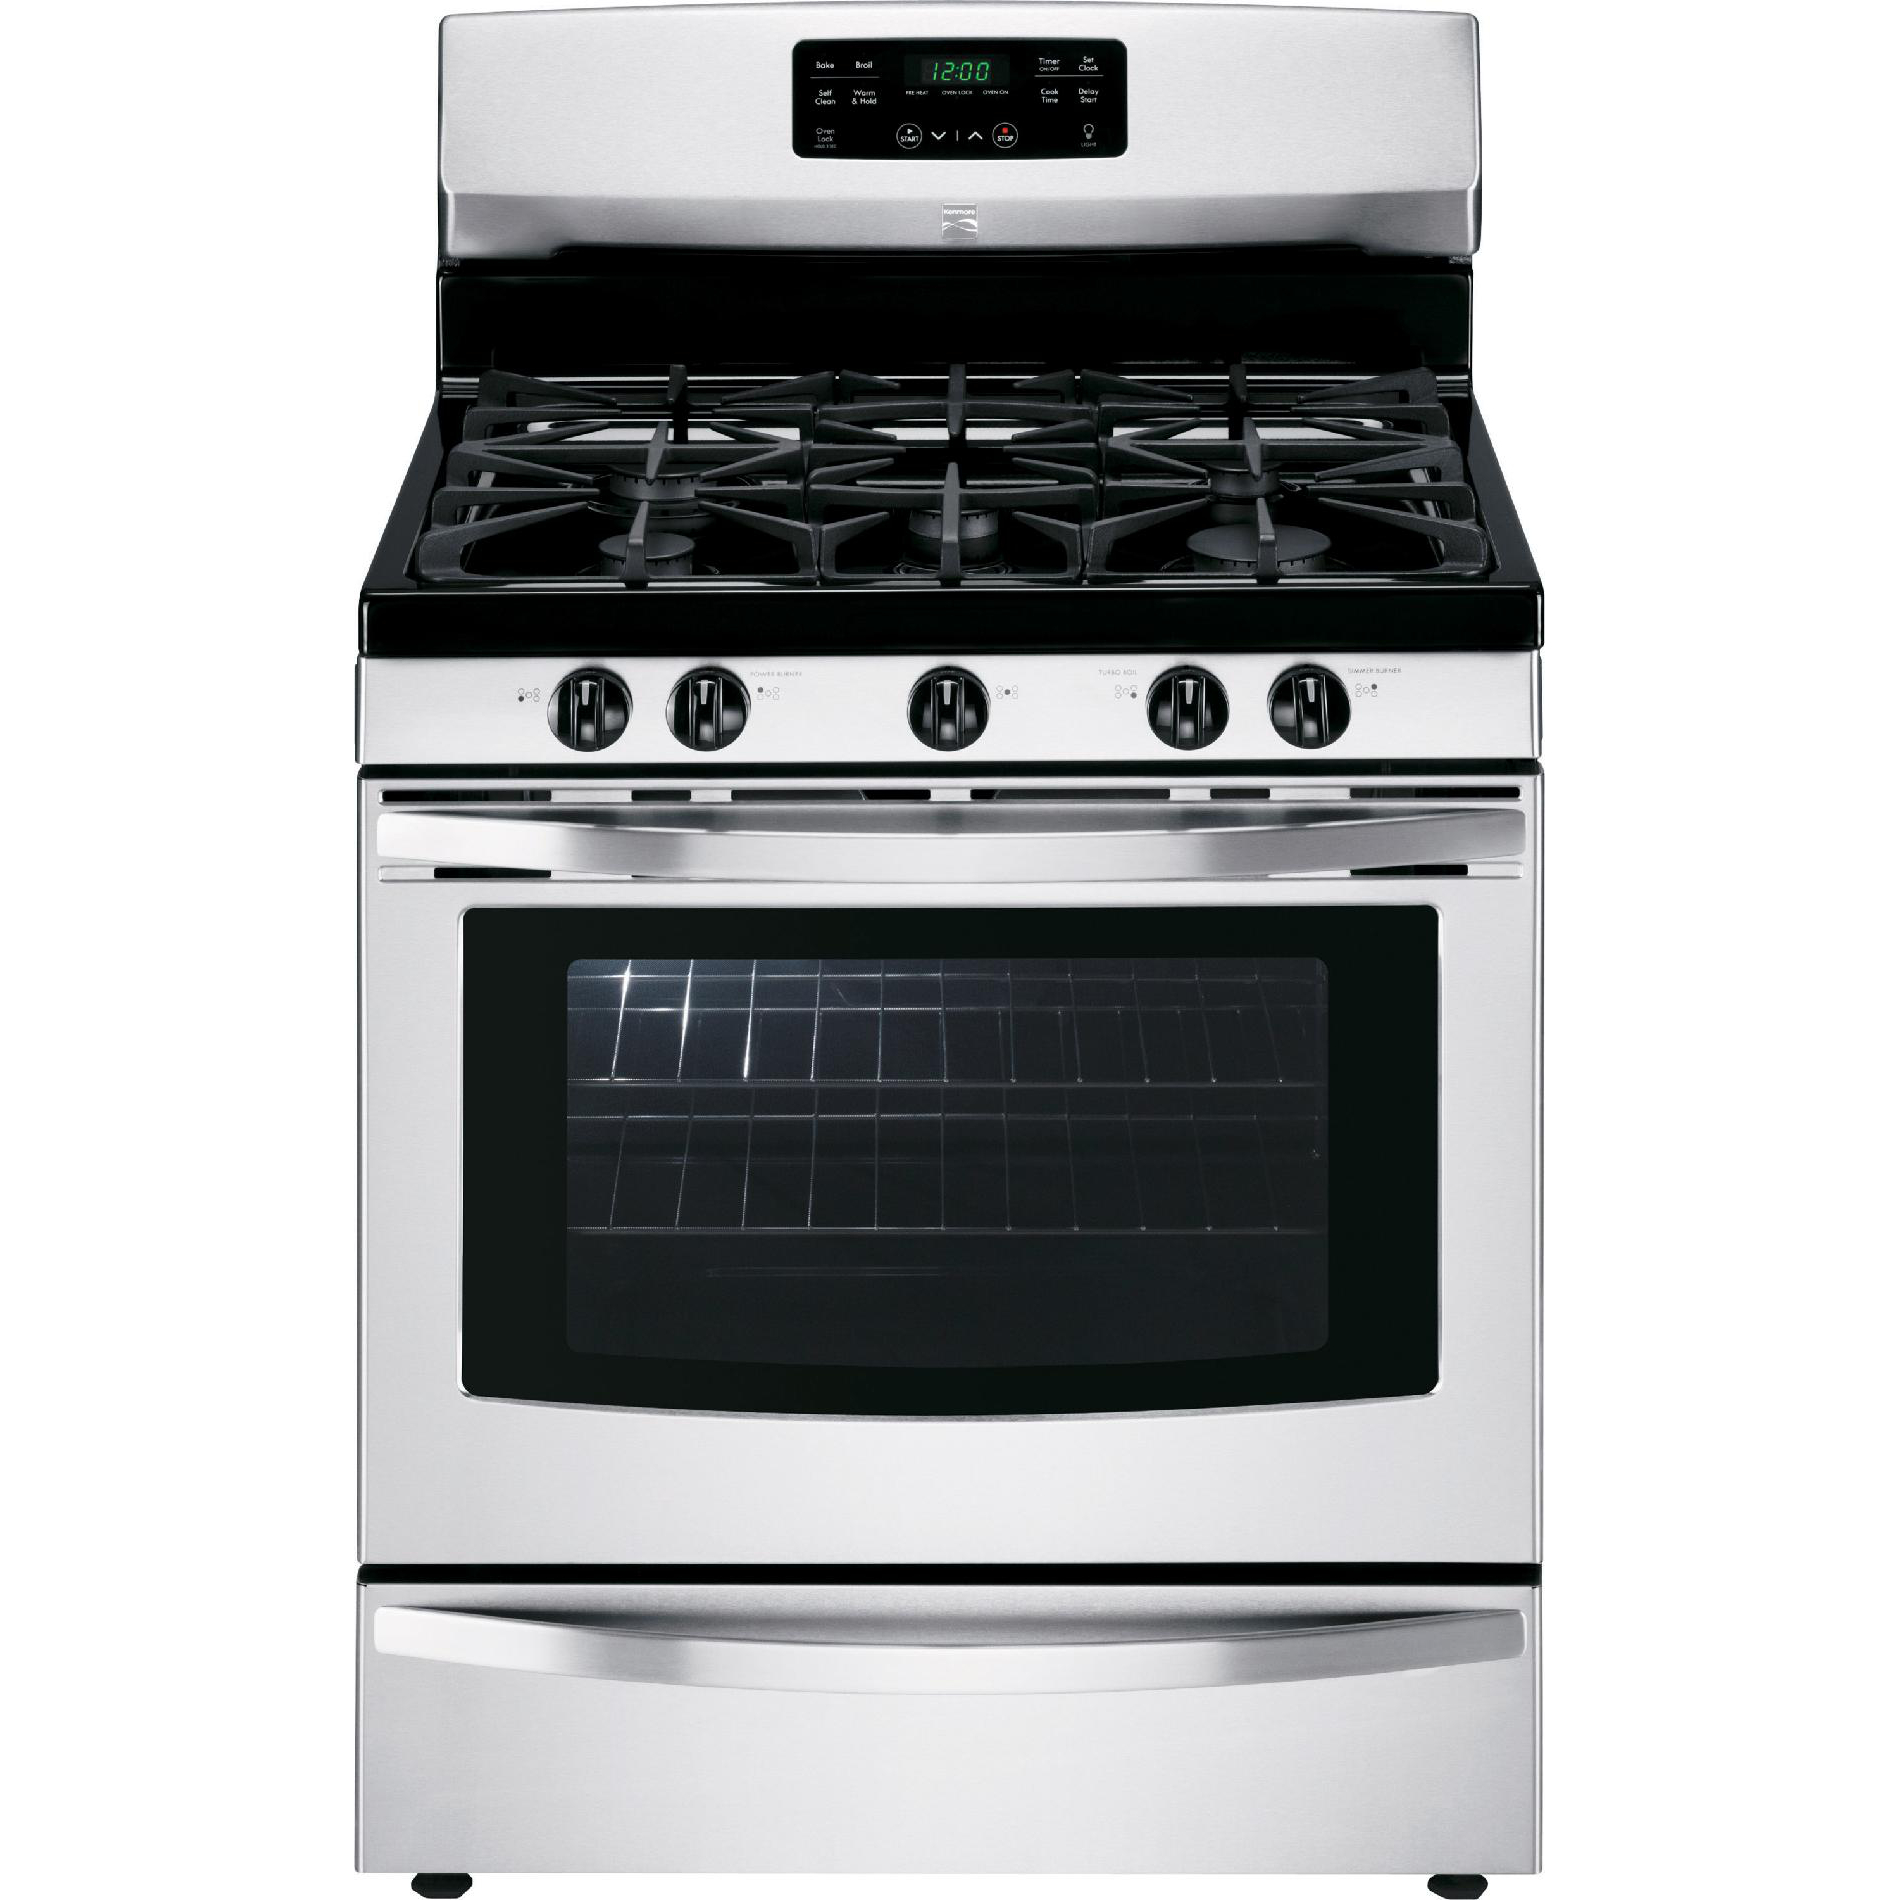 74133-5-0-cu-ft-Freestanding-Gas-Range-w-Variable-Self-Clean-Stainless-Steel